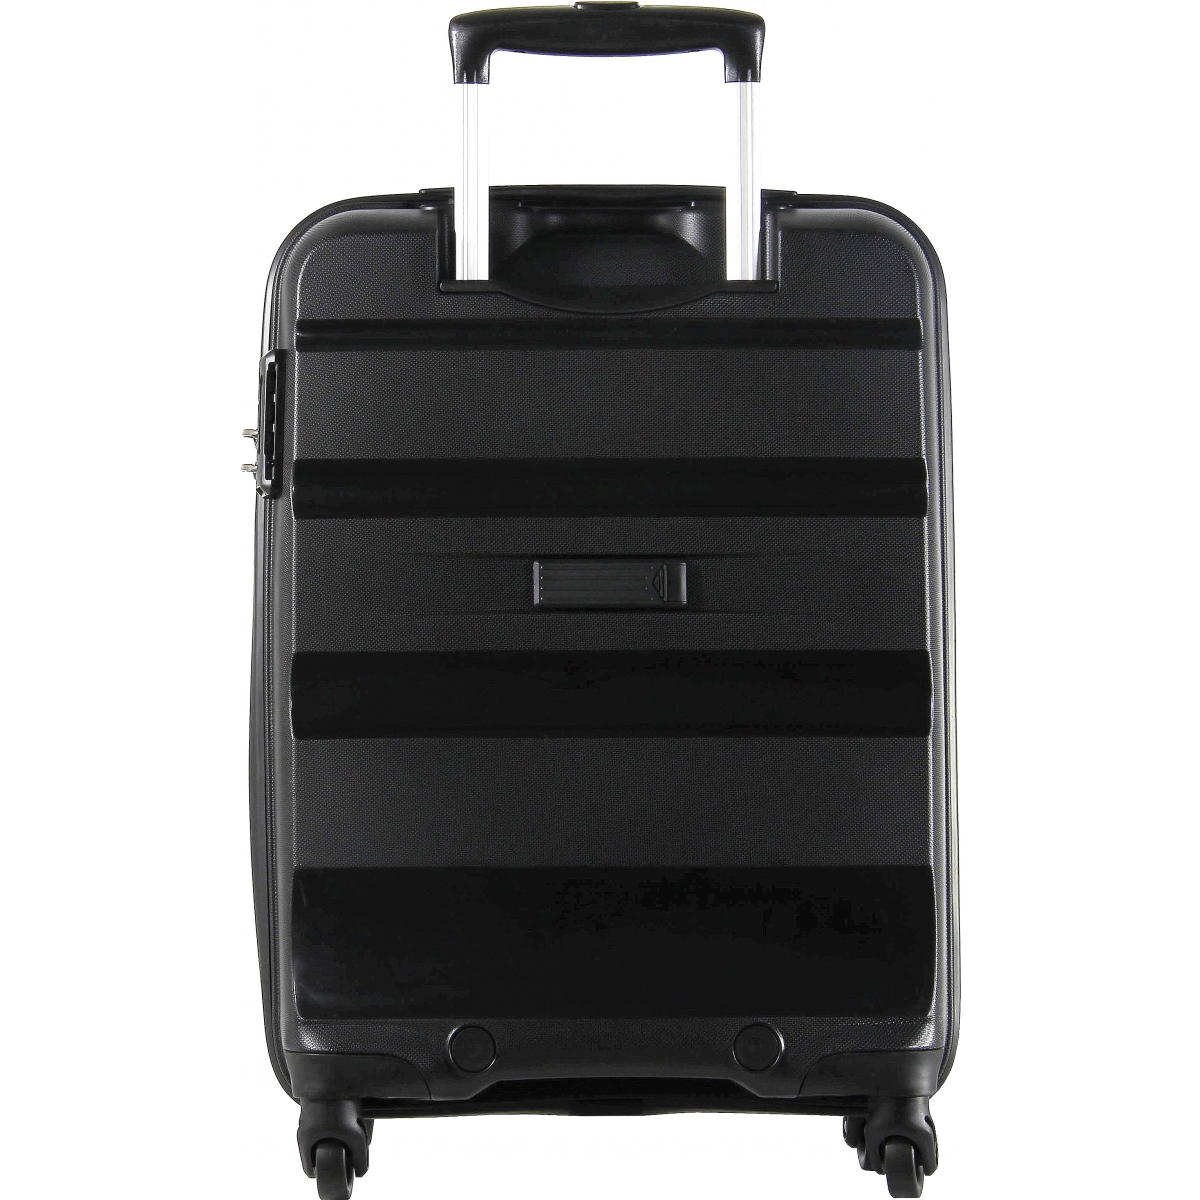 valise cabine bon air american tourister 55cm bonair22 couleur principale rouge valise. Black Bedroom Furniture Sets. Home Design Ideas